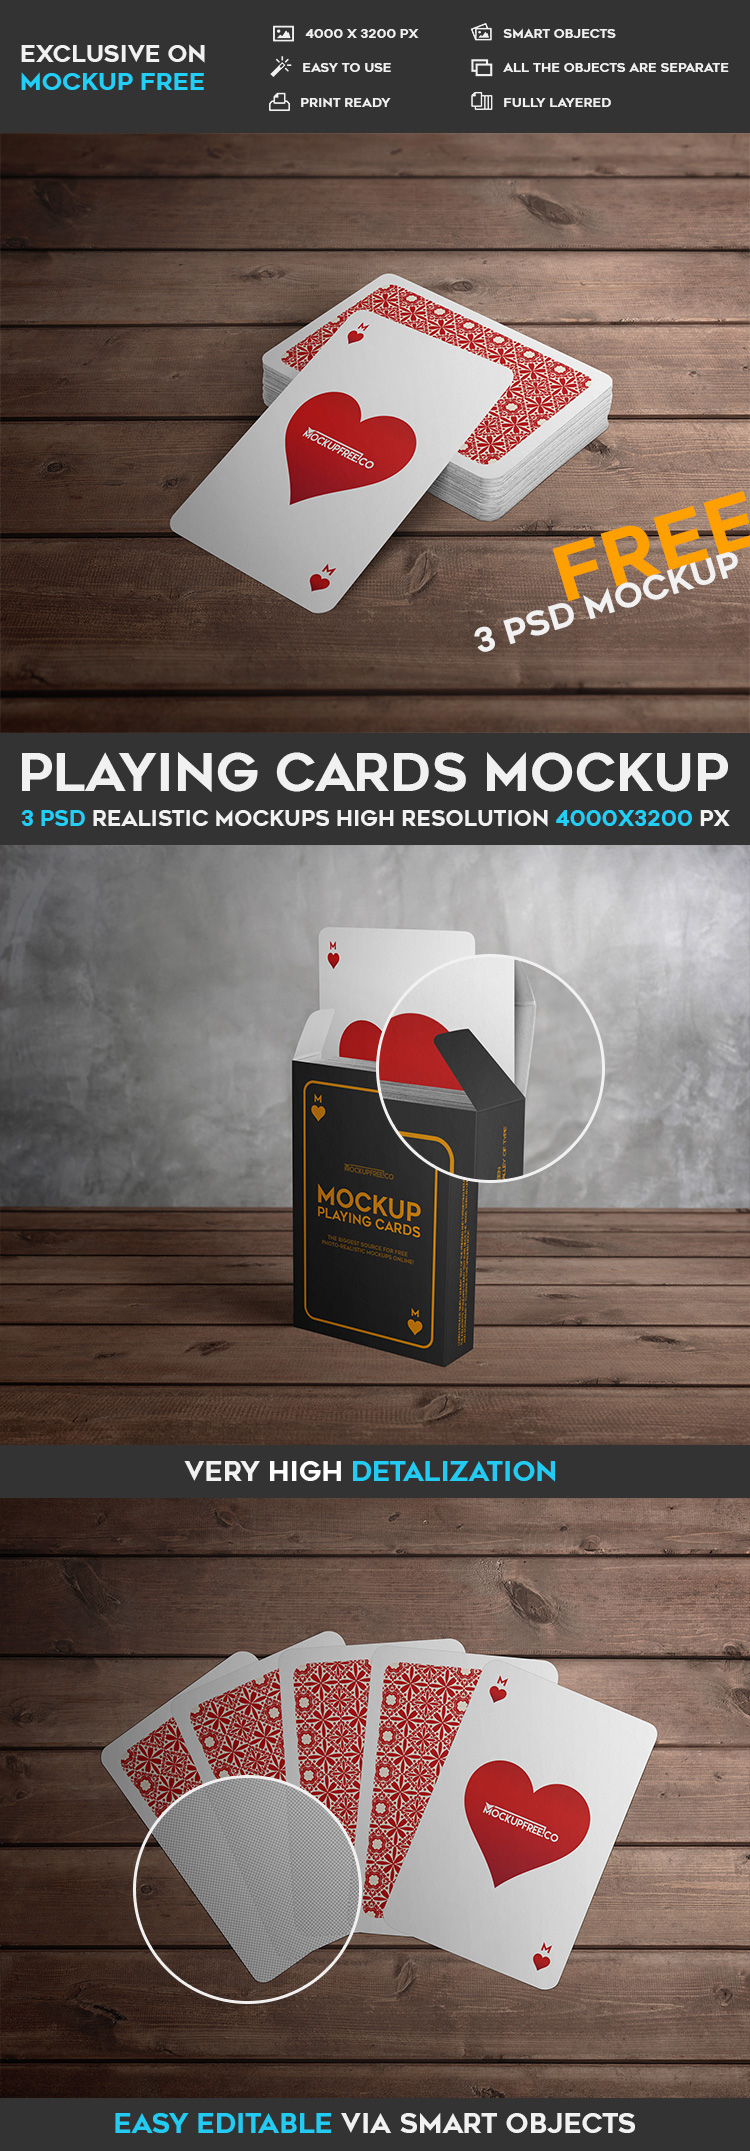 Download For Free These Qualitative 3 PSD Mockups Playing Cards And Make Presentations Promote Your Brands Or Labels Create Branding Identity